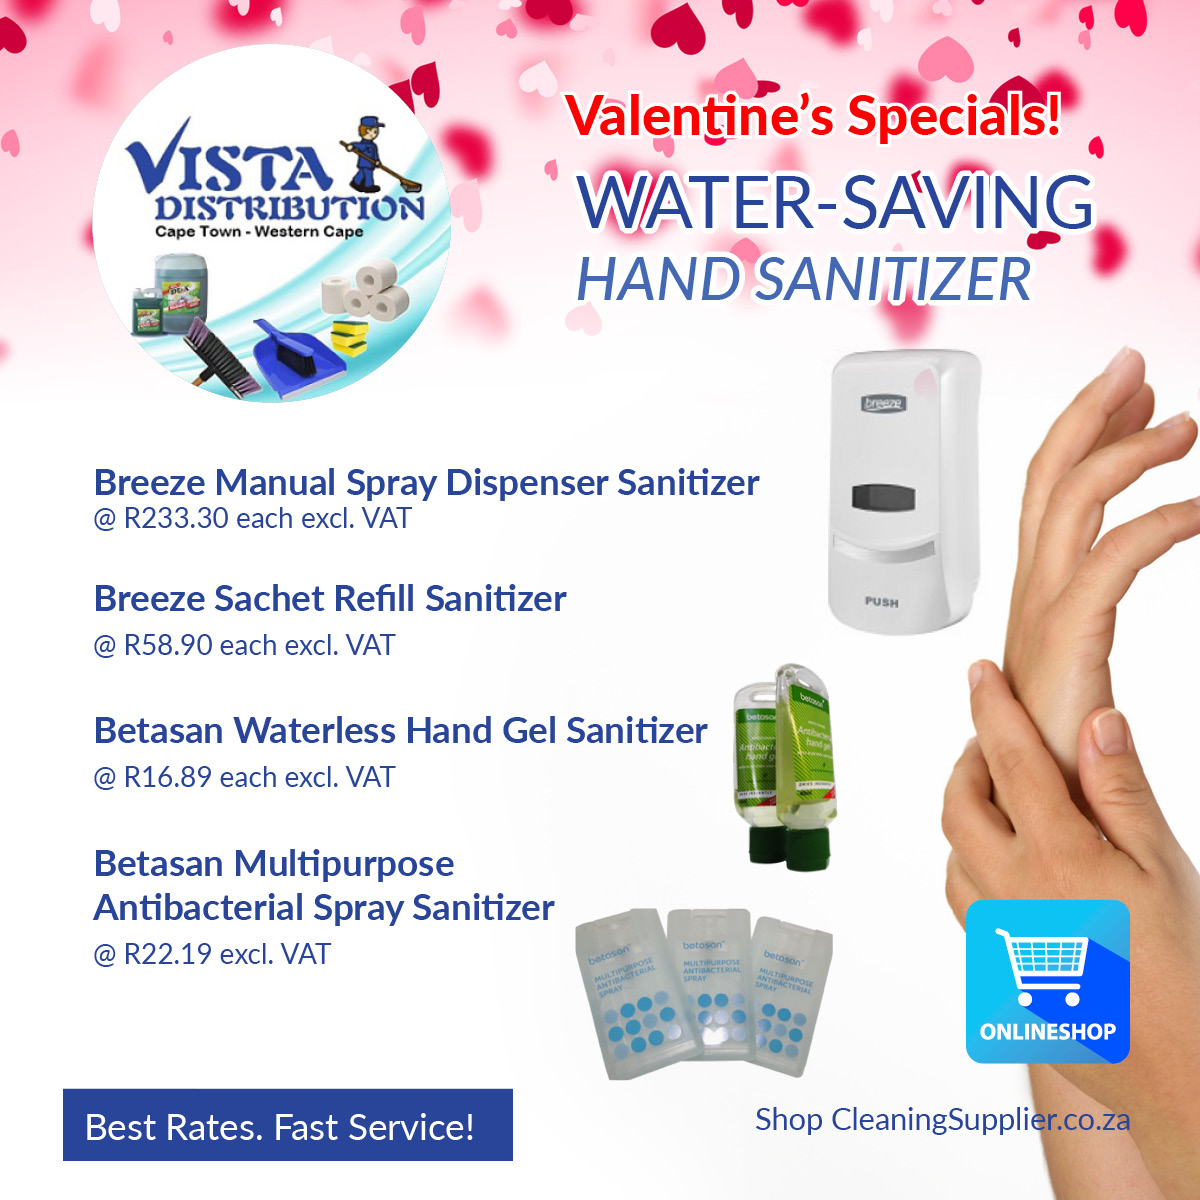 SAVE WATER! Water-less solutions- hand sanitizers, wet wipes, no-flush toilet chemicals and more!